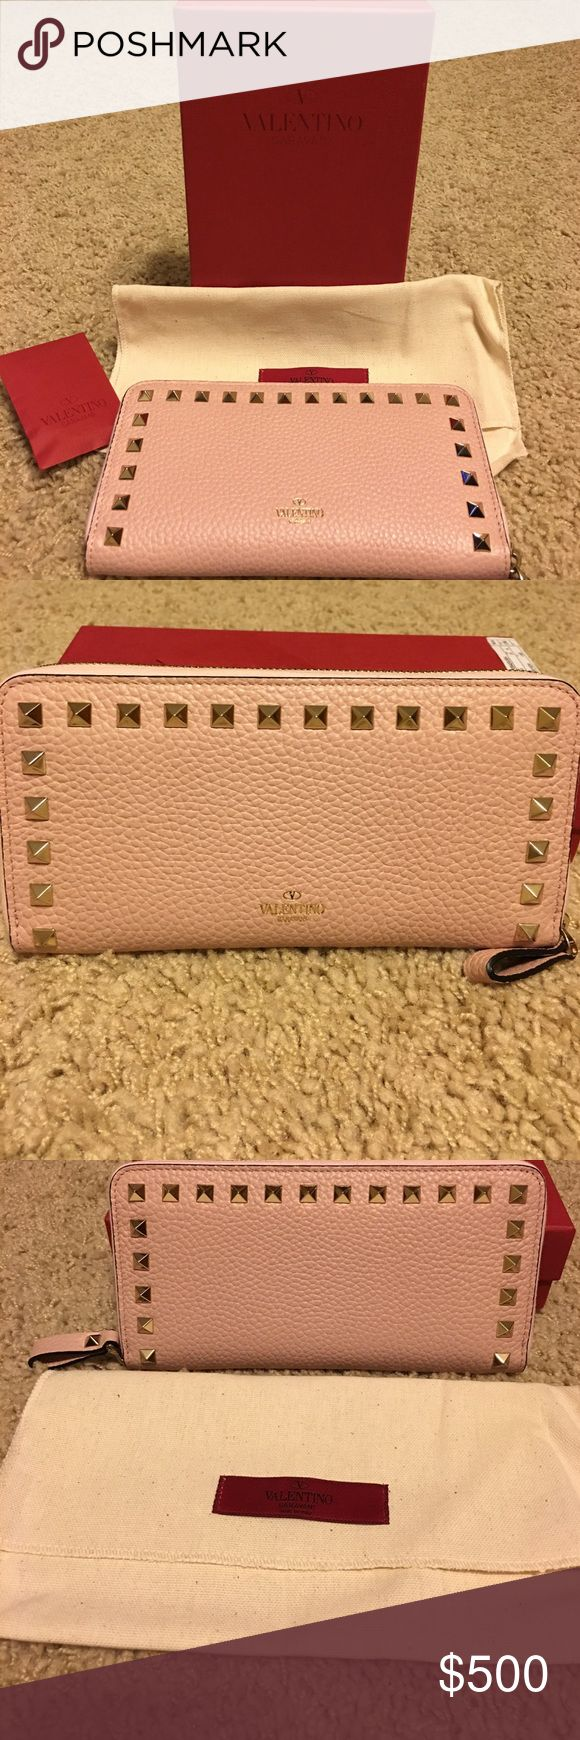 "Authentic Rockstud Continental Valentino Wallet Brand new-Authentic Stunning Rockstud Continental Leather Wallet-Zip around closure, 12 card slots. 7 1/2"" W, 4"" H, 1"" D. Comes with box, dustbag and extra studs! Color is called ""water rose"". It's pink. Valentino Garavani Bags Wallets"